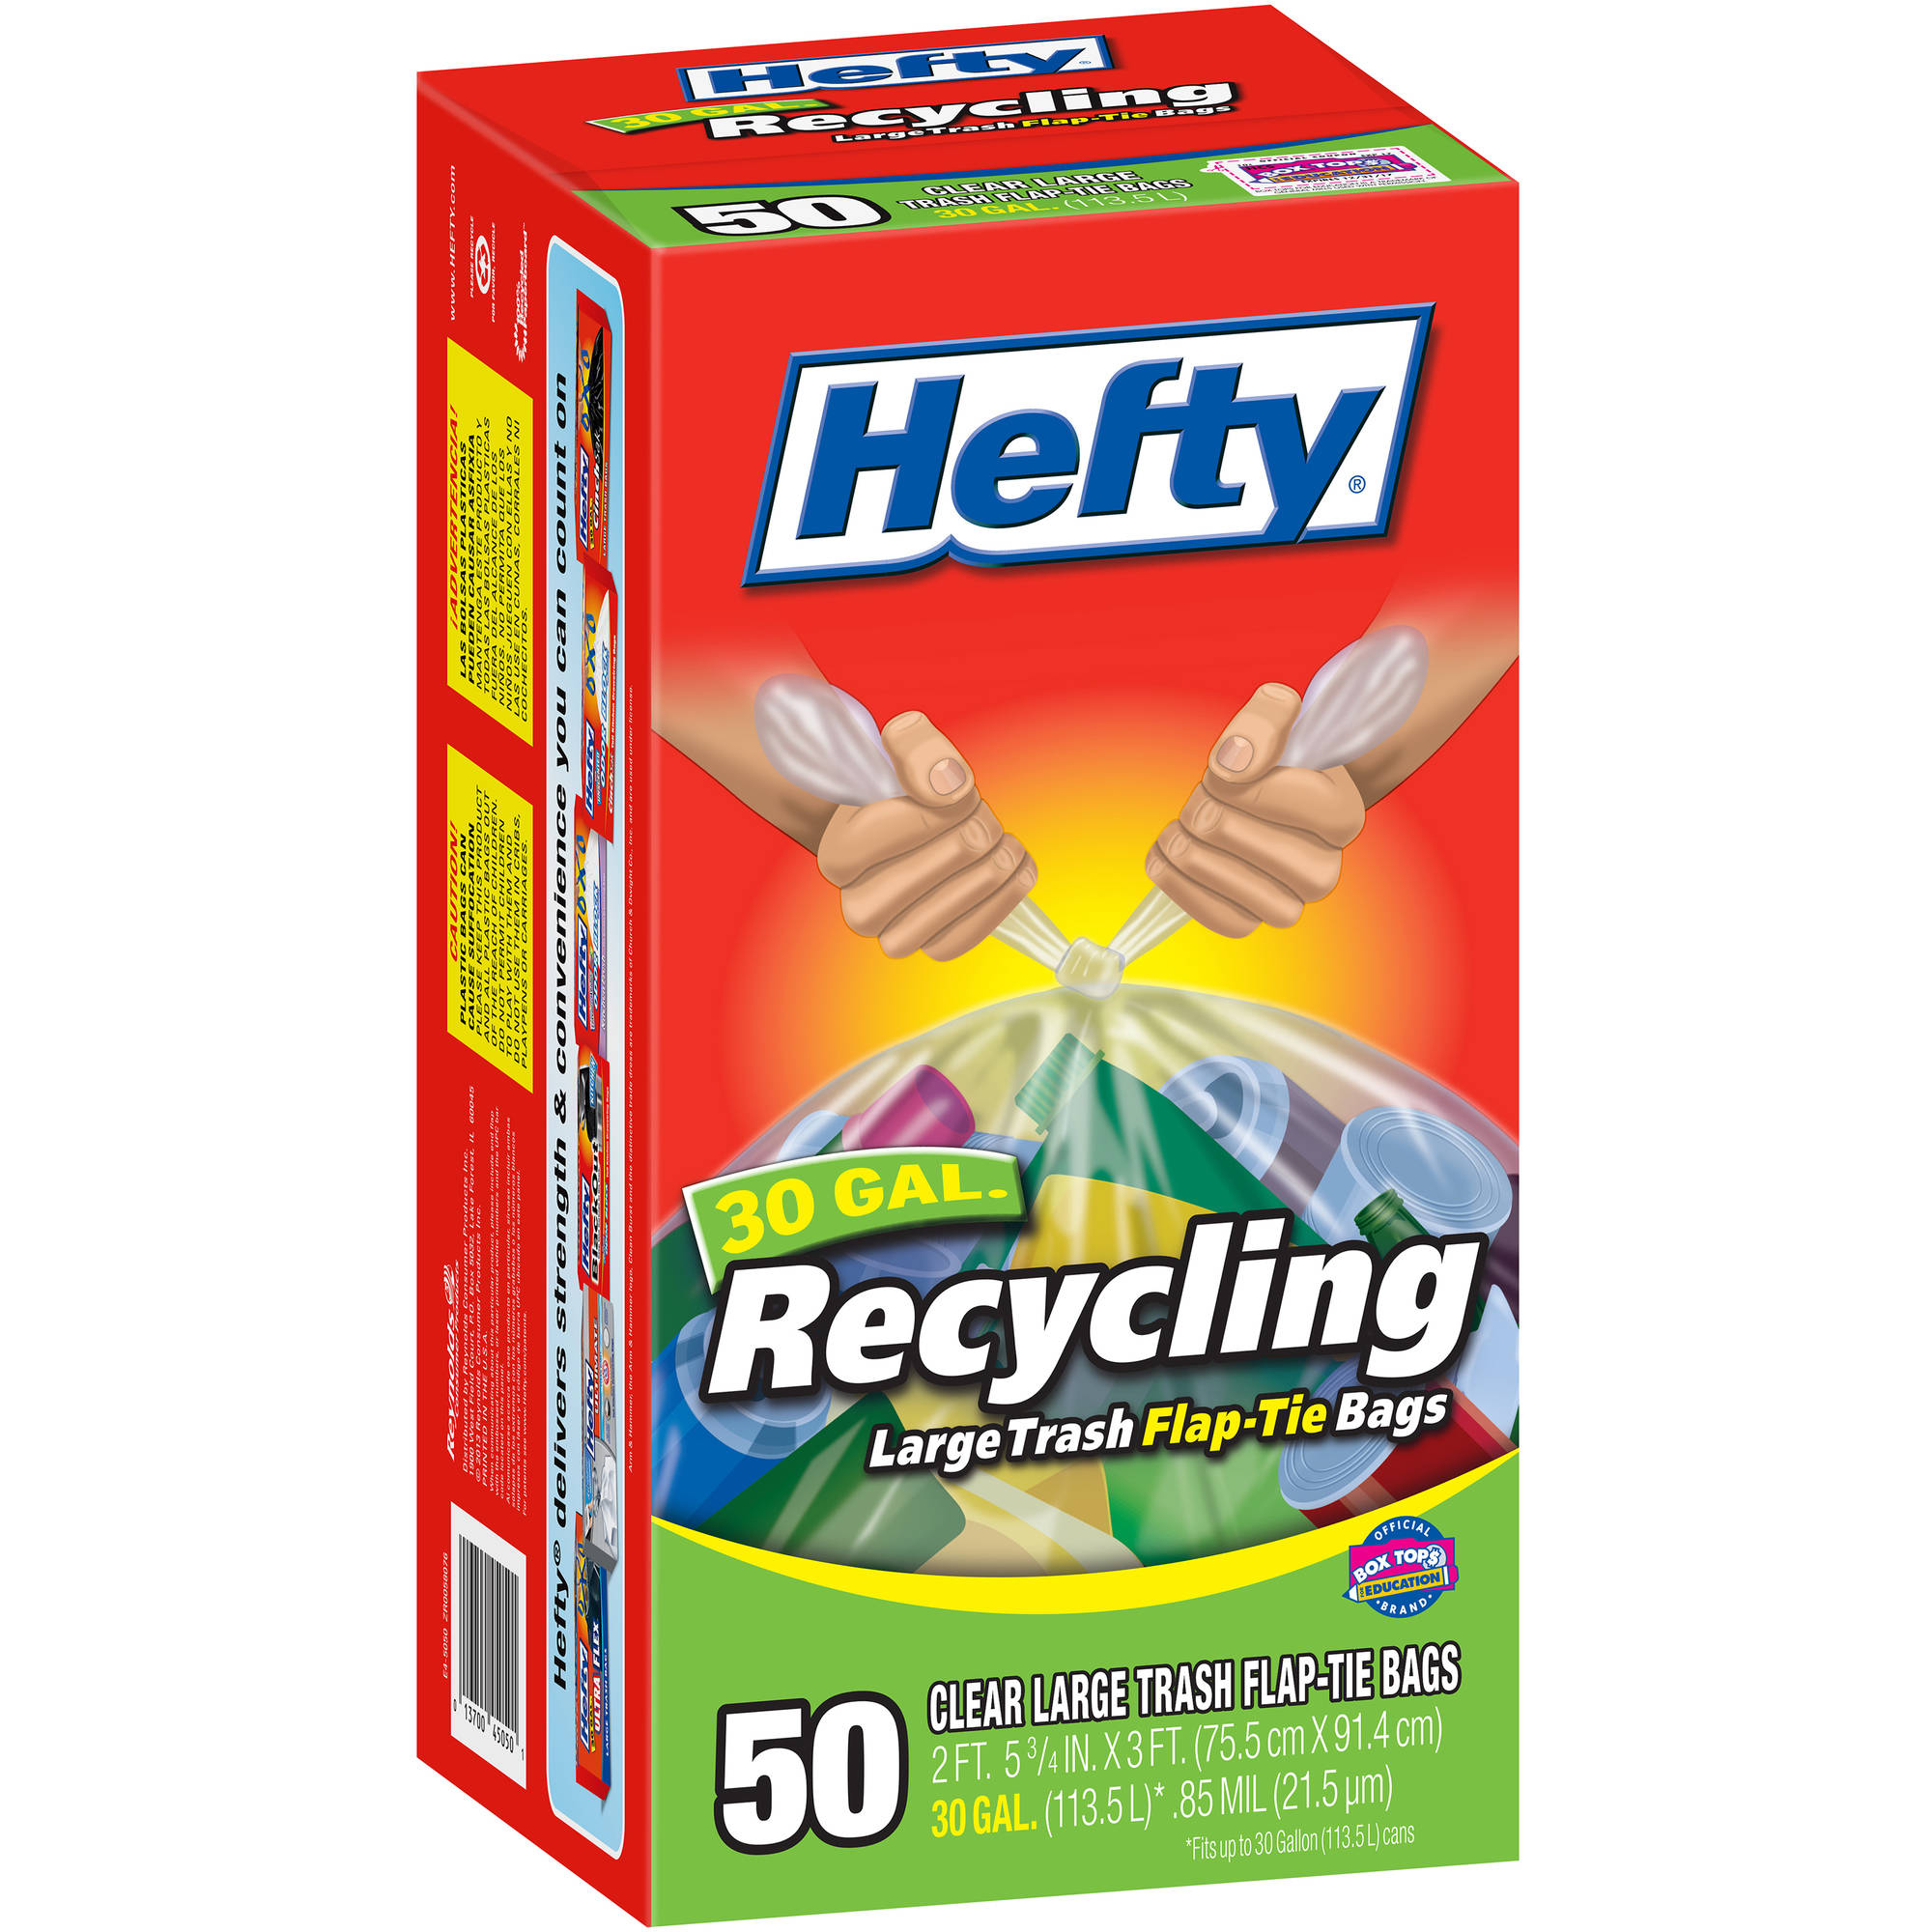 Hefty Recycling Clear Large Flap-Tie Trash Bags, 30 gallon, 50 count